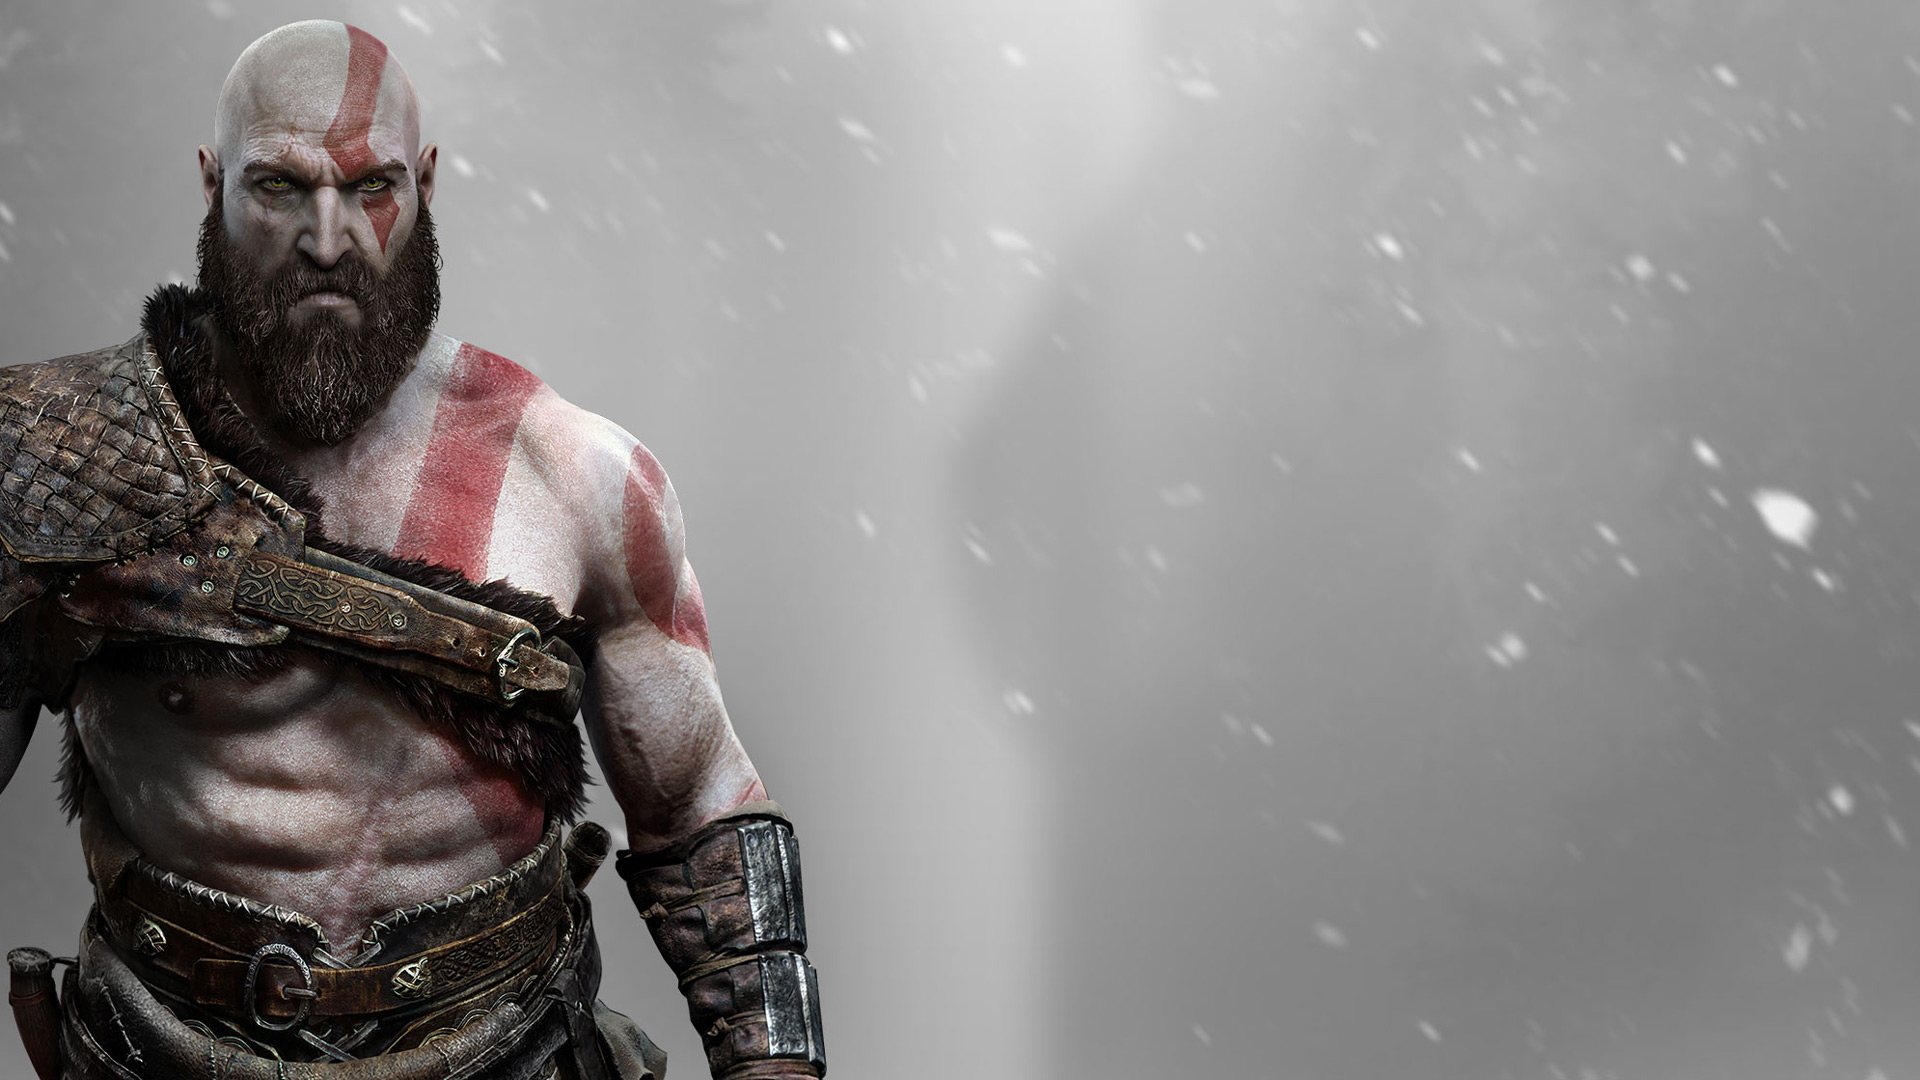 2560x1024 Kratos God Of War 2560x1024 Resolution Hd 4k